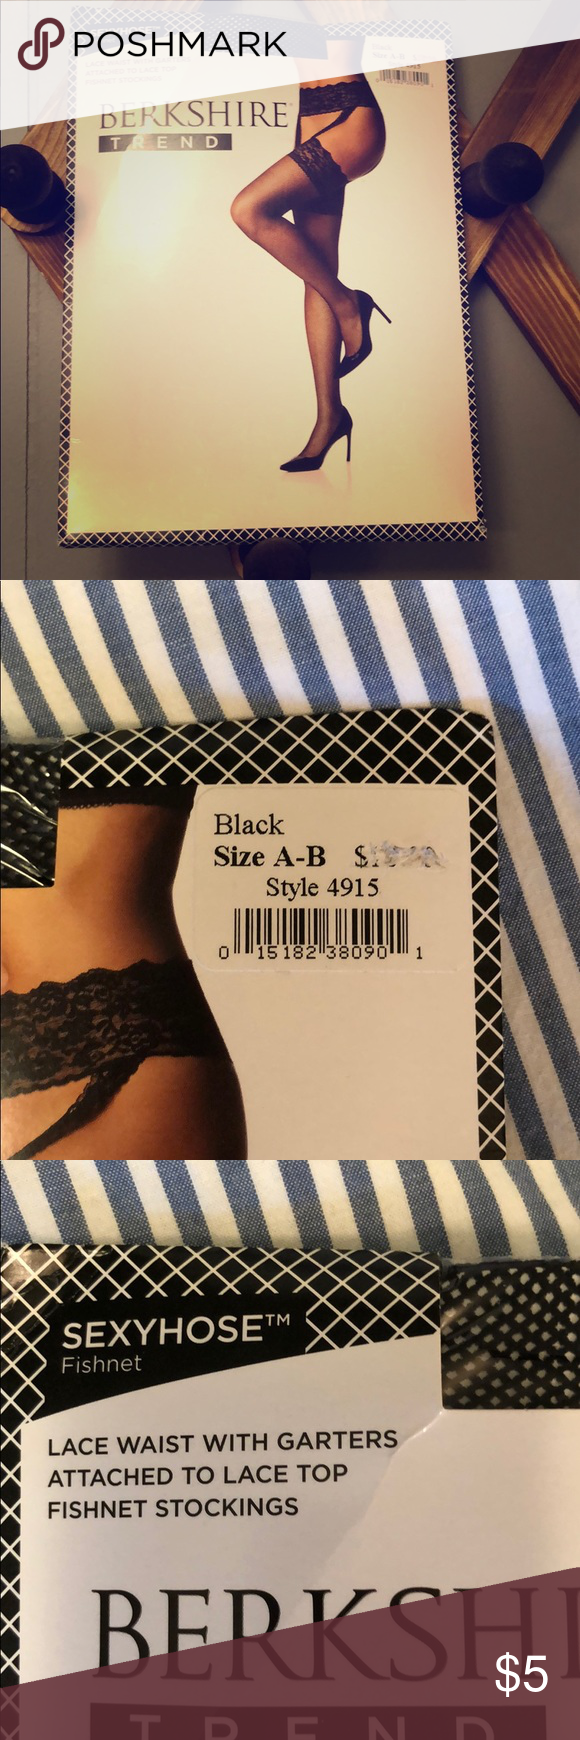 aa36e5c90c796 Berkshire fishnet stockings. Berkshire trend sexyhose fishnet stockings.  New   never worn. These